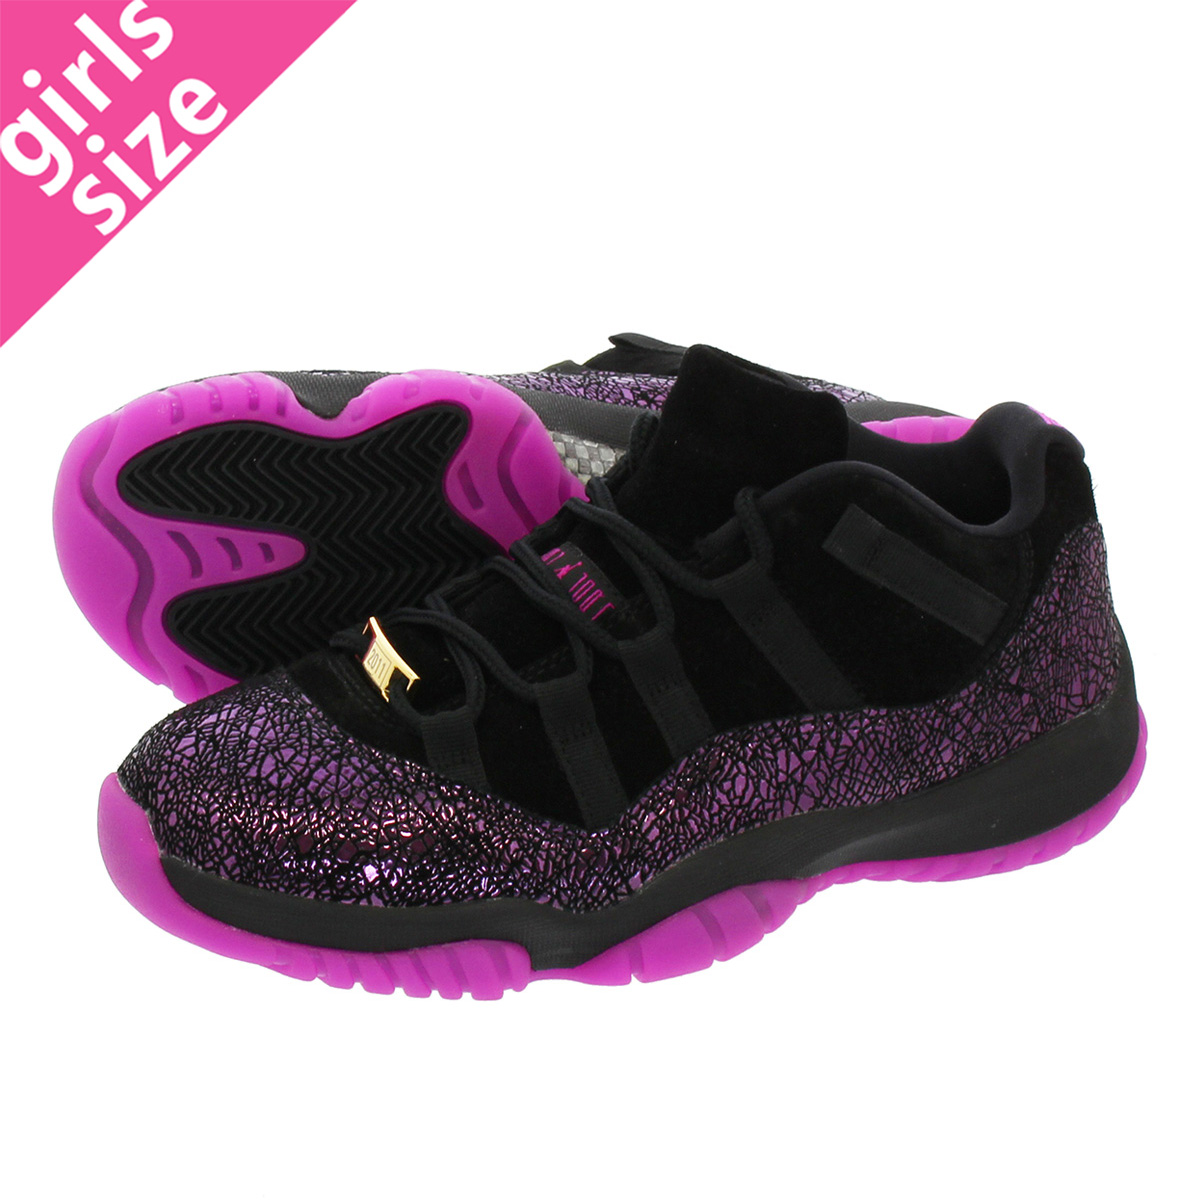 watch 6088f 1ee25 NIKE WMNS AIR JORDAN 11 RETRO LOW Nike women Air Jordan 11 nostalgic low  BLACK/FUCHSIA BLAST ar5149-005